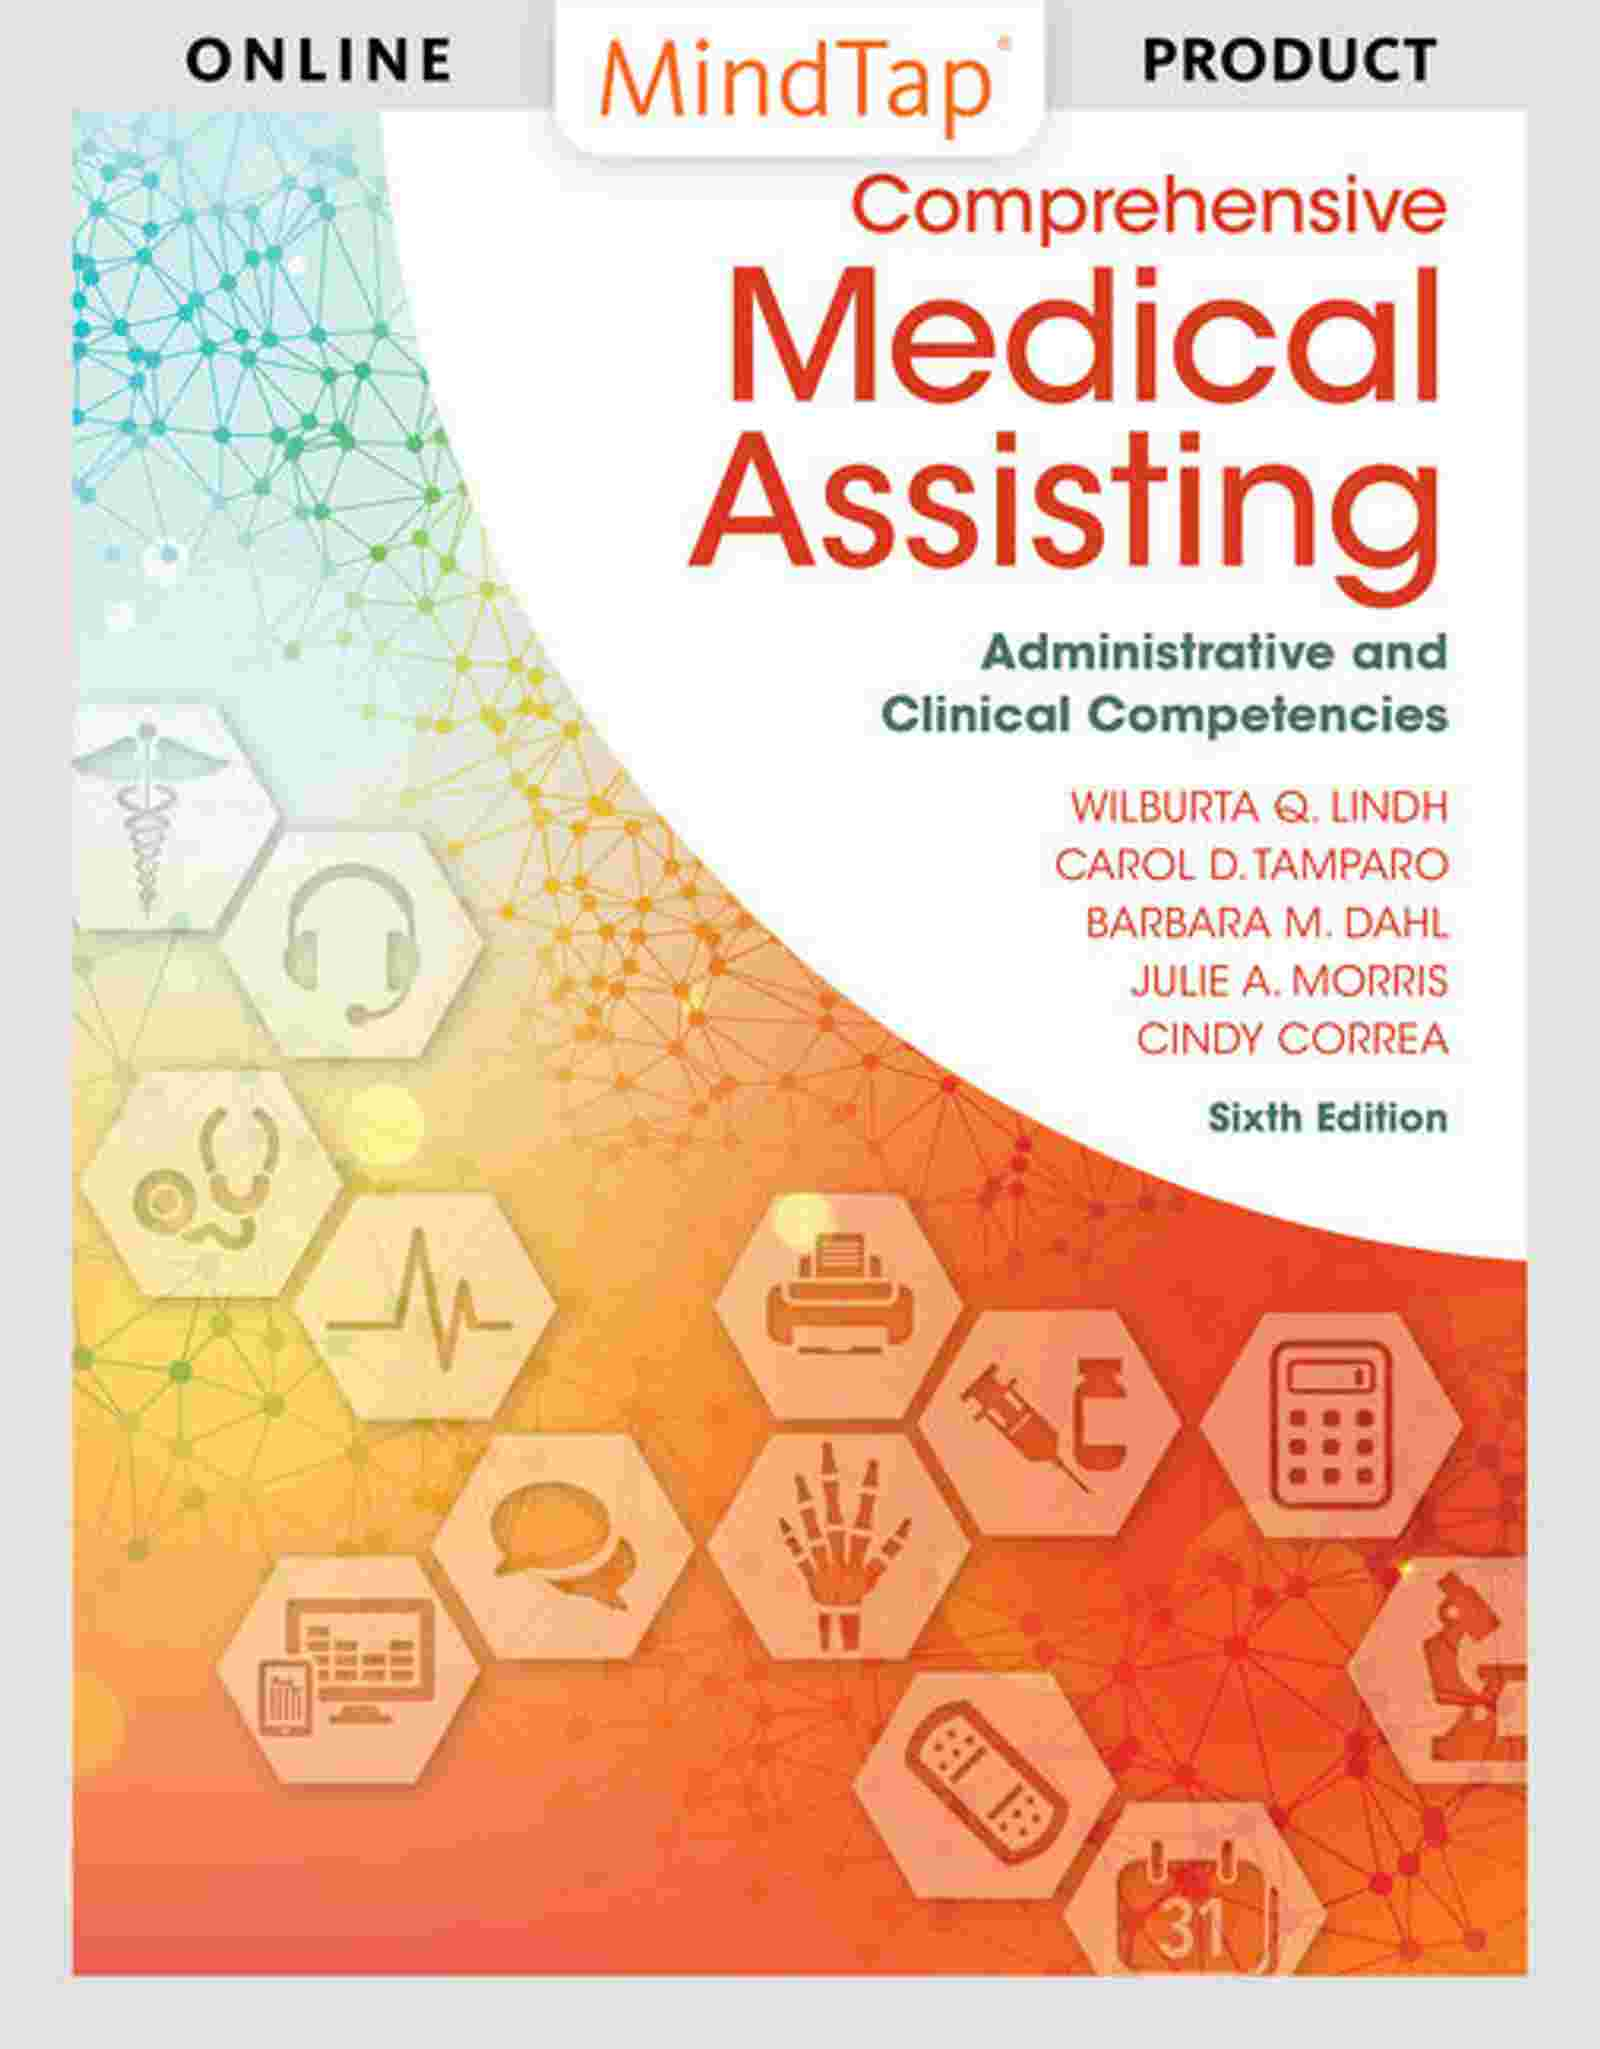 Comprehensive Medical Assisting: Administrative and Clinical Competencies, 6th Edition